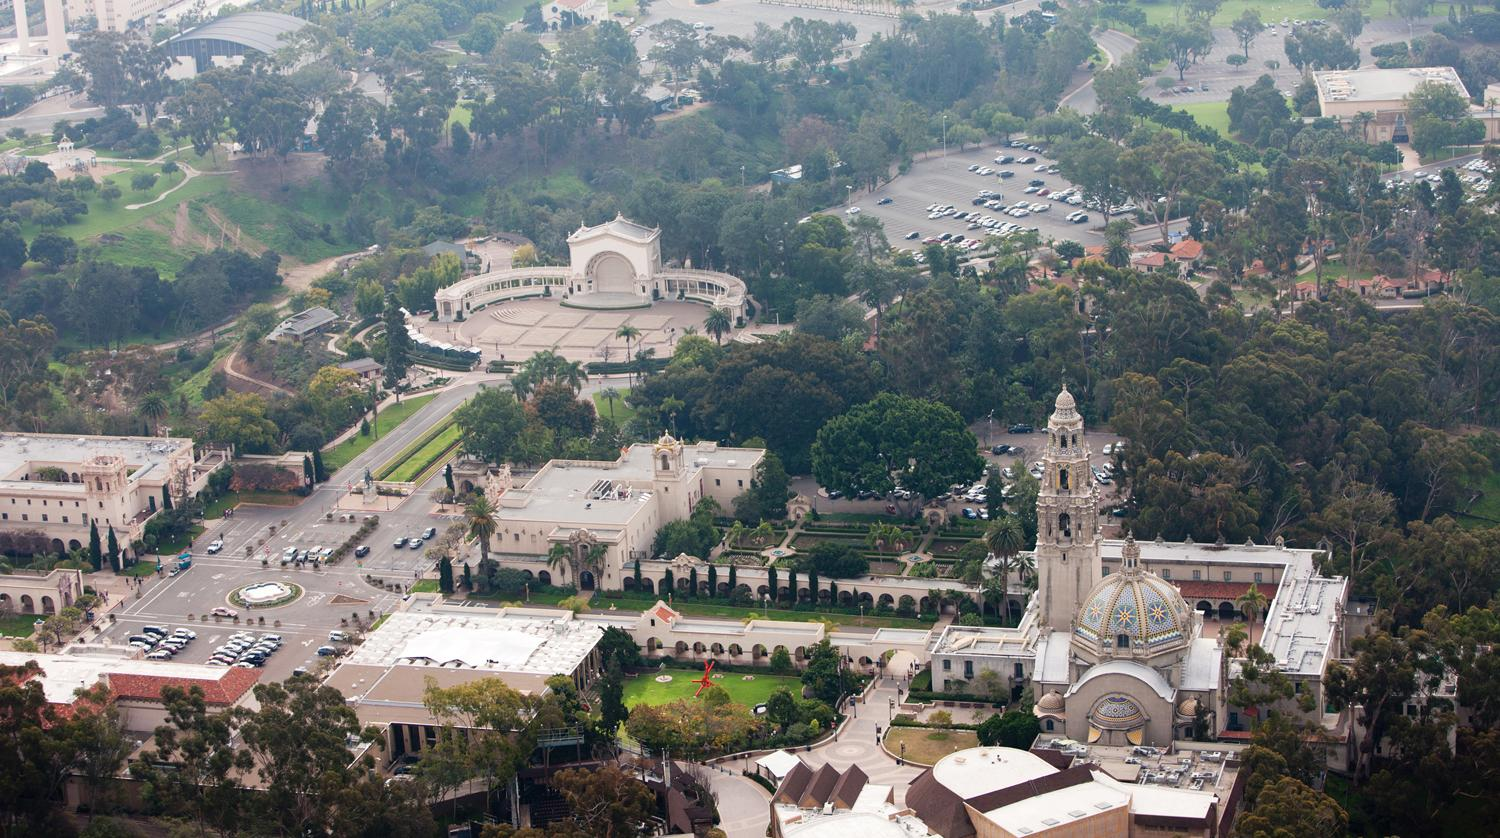 Aerial view of the the park. The Plaza de Panama is on the left and the  building on the right is the Museum of Man. The structure on the upper left side is the Spreckels Organ Pavilion.